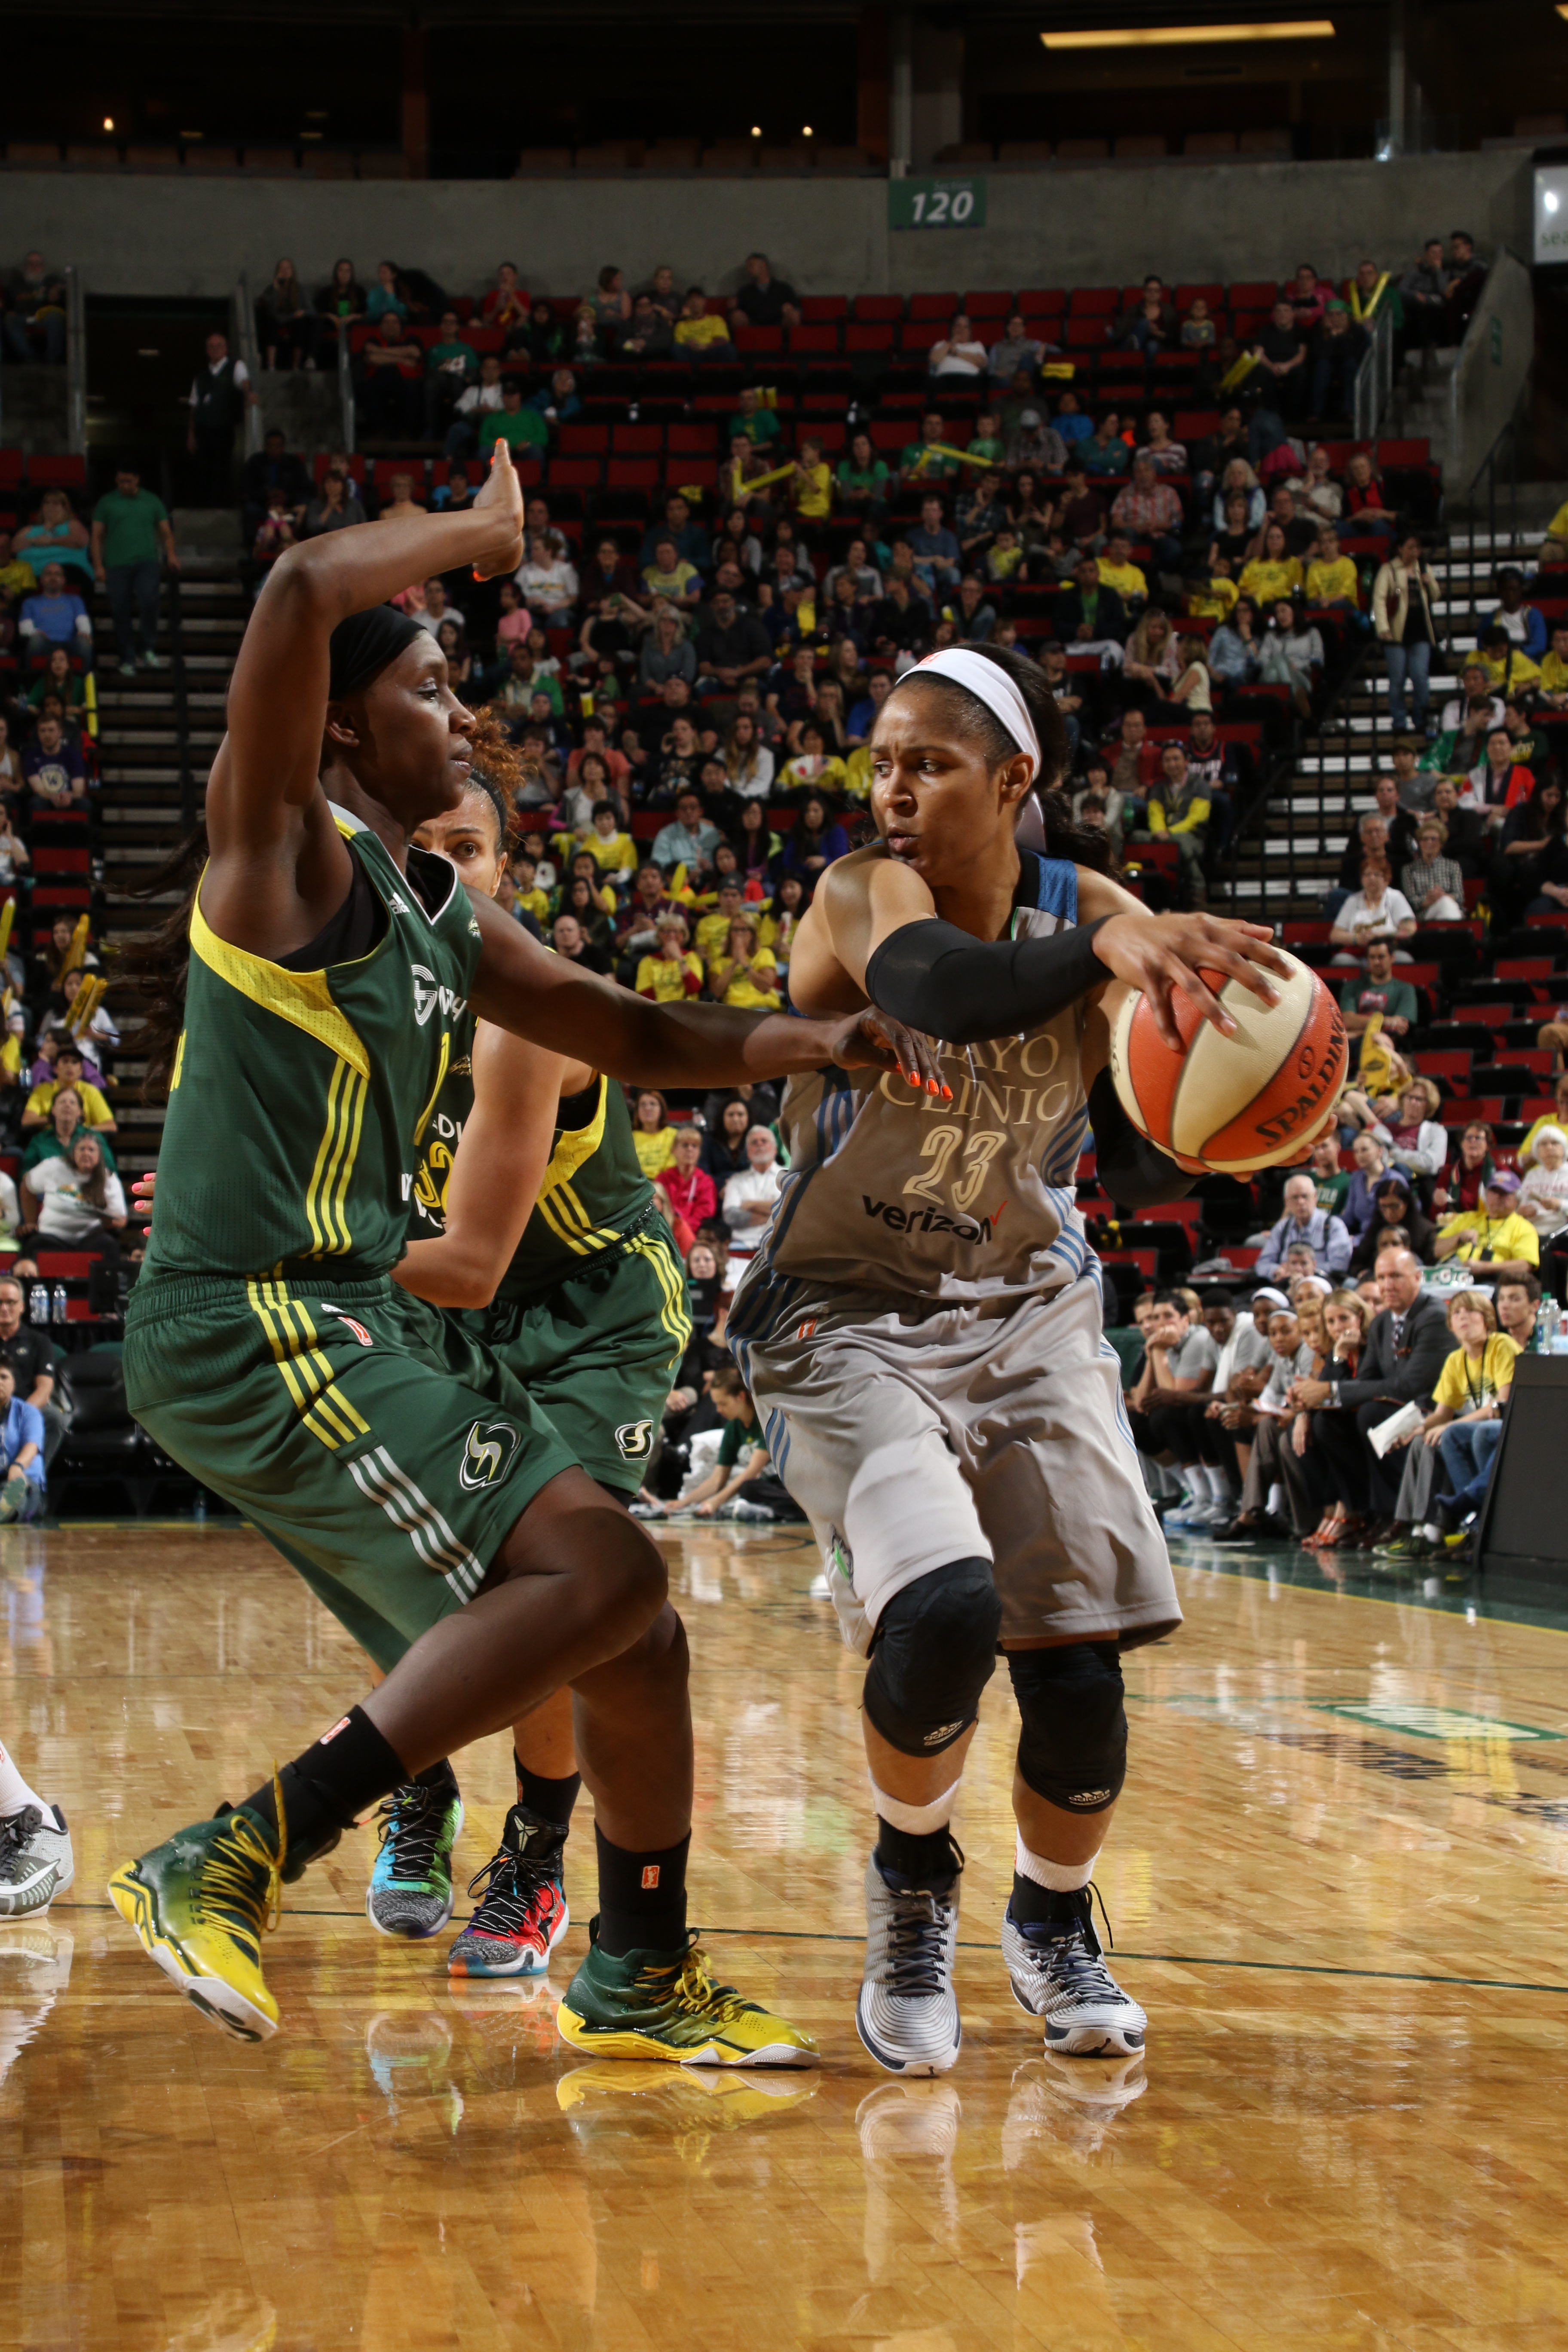 SEATTLE, WA - MAY 22: Maya Moore #23 of the Minnesota Lynx handles the ball against the Seattle Storm  on May 22, 2016 at KeyArena in Seattle, Washington. NOTE TO USER: User expressly acknowledges and agrees that, by downloading and or using this photograph, user is consenting to the terms and conditions of Getty Images License Agreement. Mandatory Copyright Notice: Copyright 2016 NBAE (Photo by Josh Huston/NBAE via Getty Images)